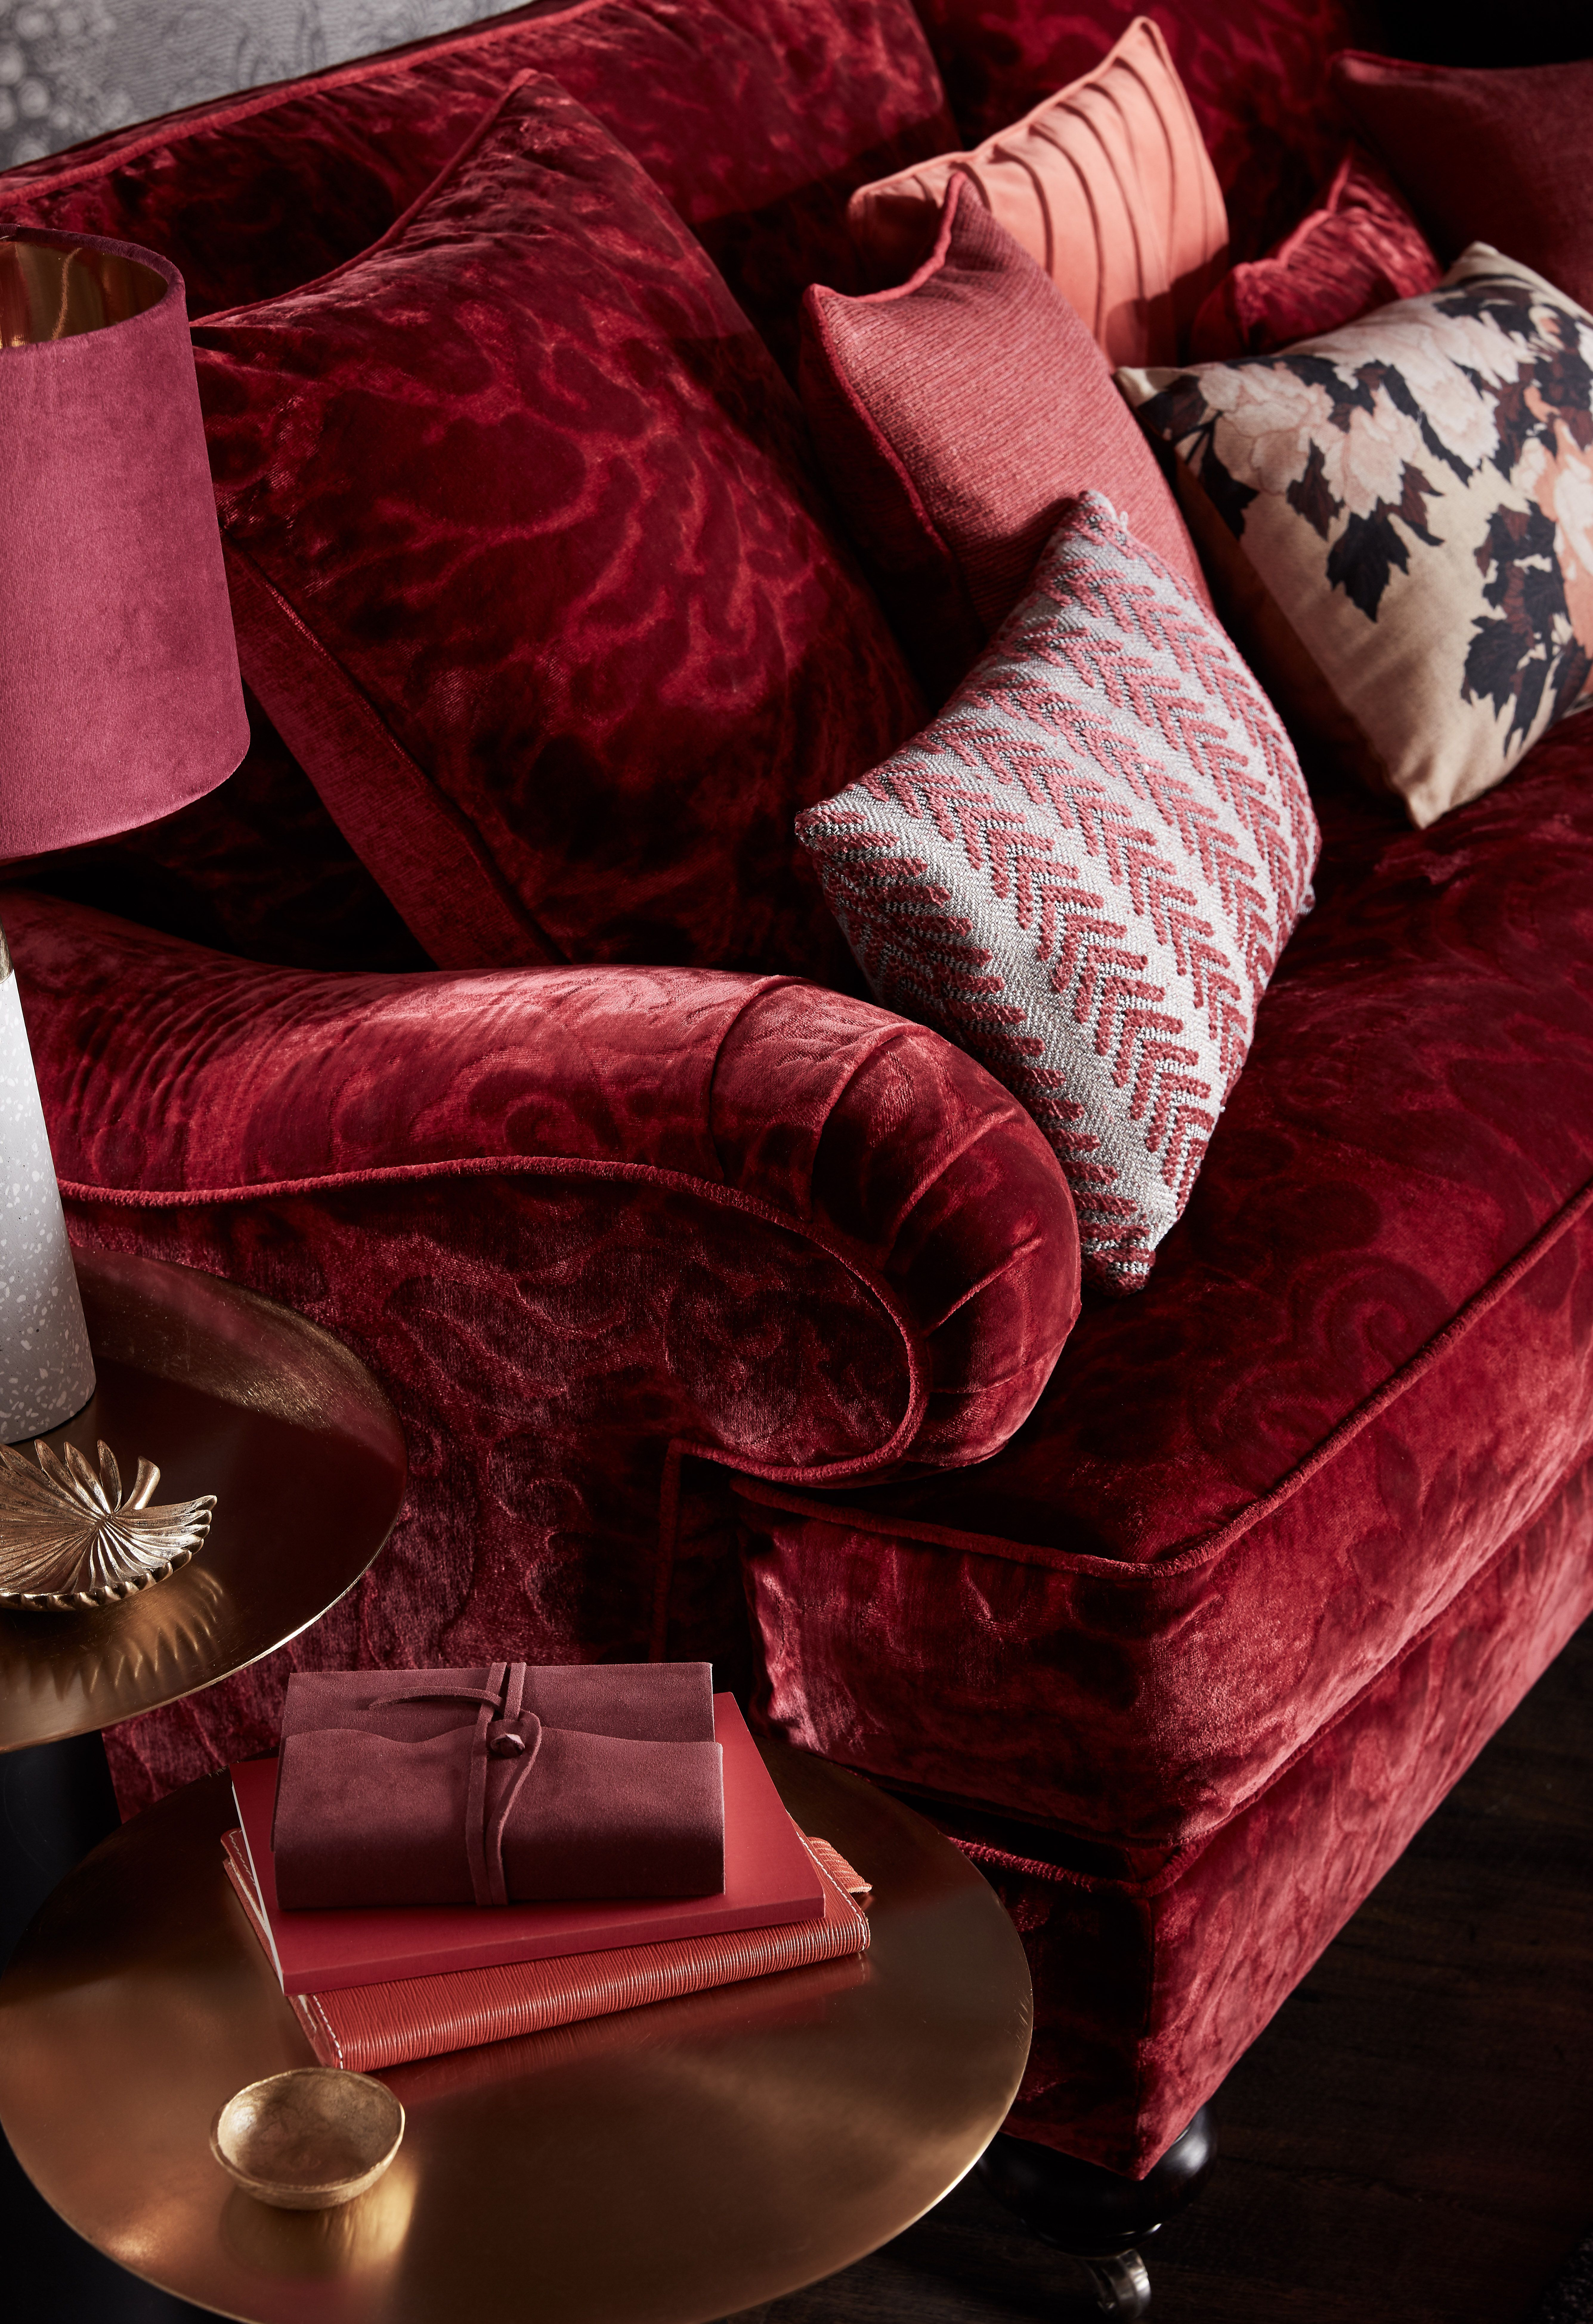 What little things make your home feel cosy? Our